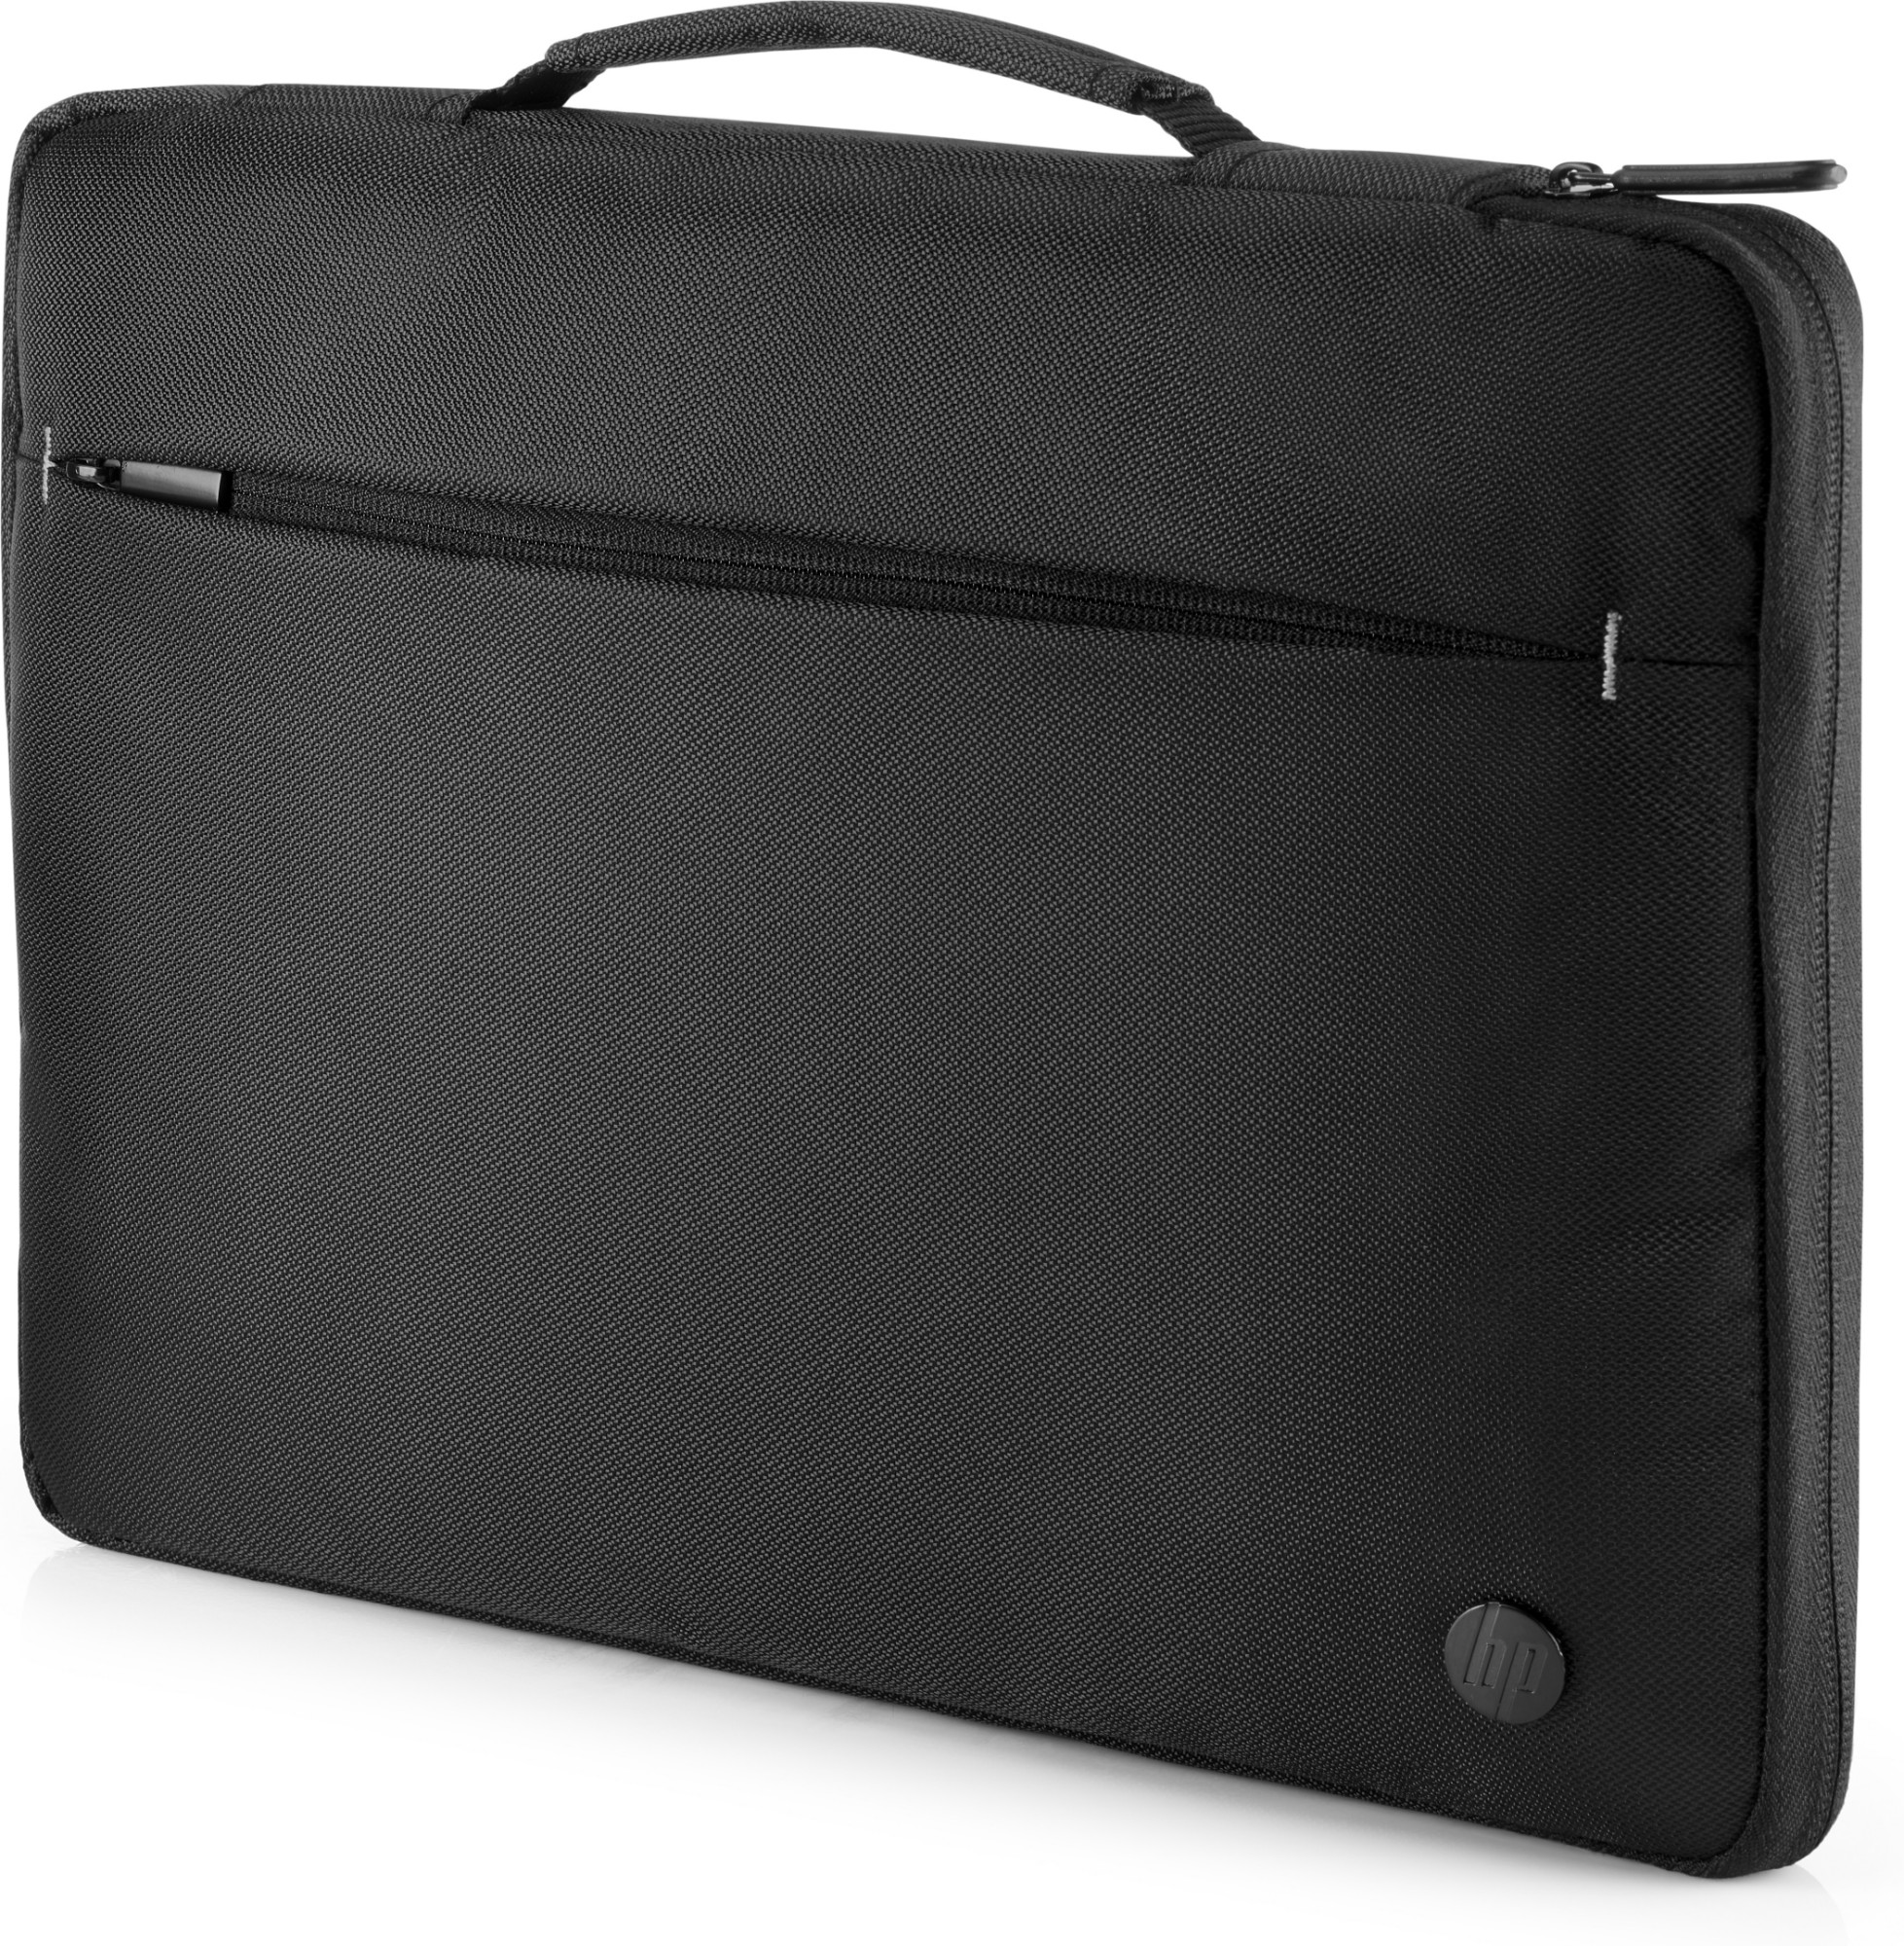 HP 14.1 Business Sleeve notebook case 35.8 cm (14.1